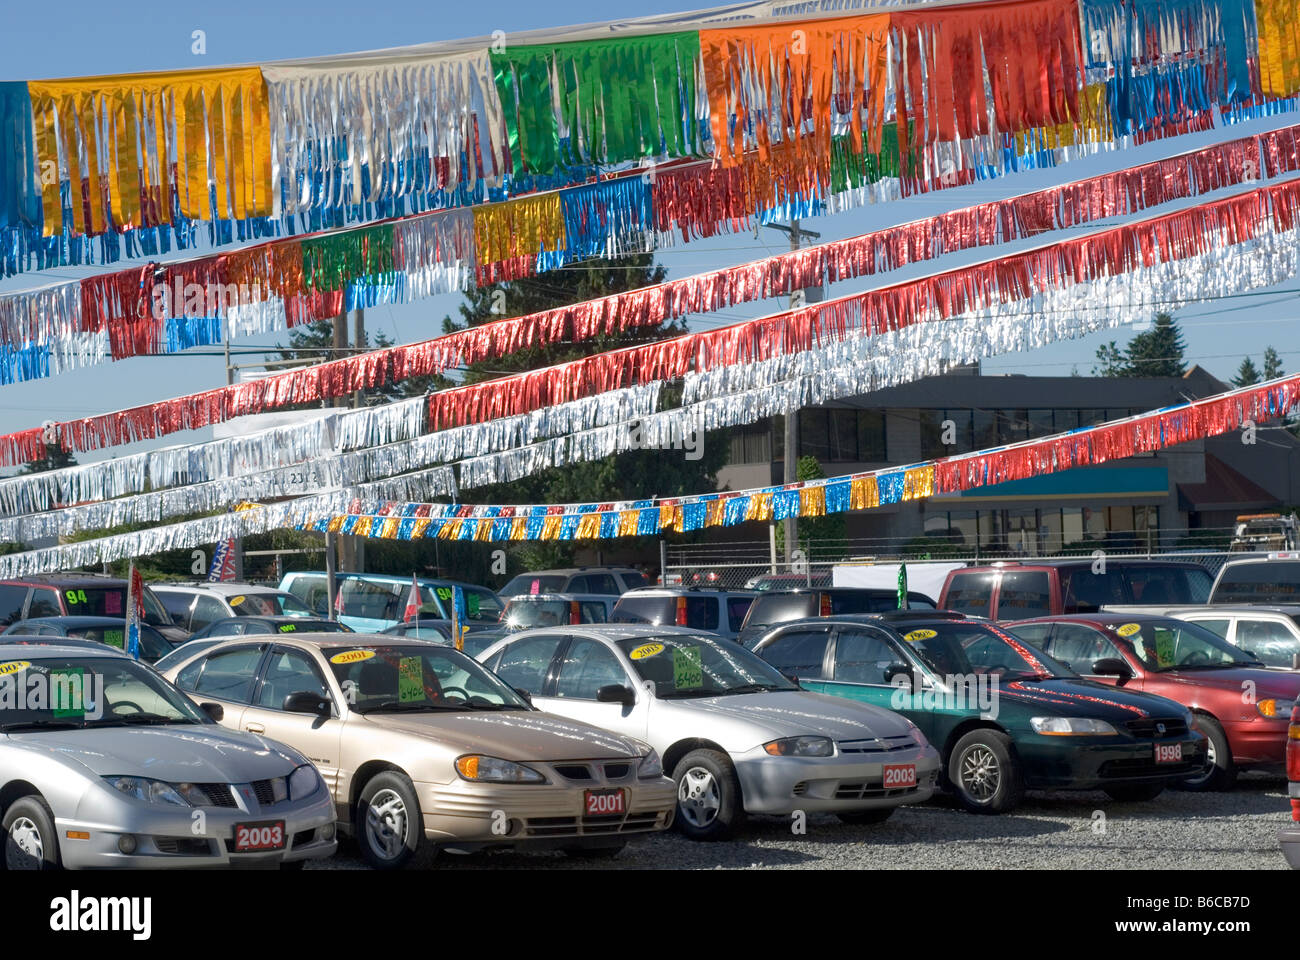 d2e0787366 Used Car Lot Stock Photos   Used Car Lot Stock Images - Alamy